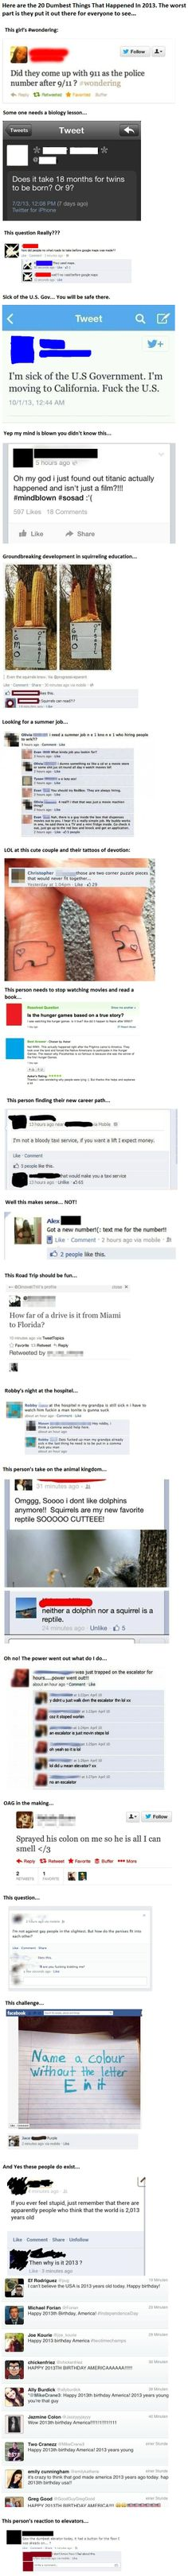 Oh my god, I have no hope left for humanity. the dumbest things said on the internet in 2013